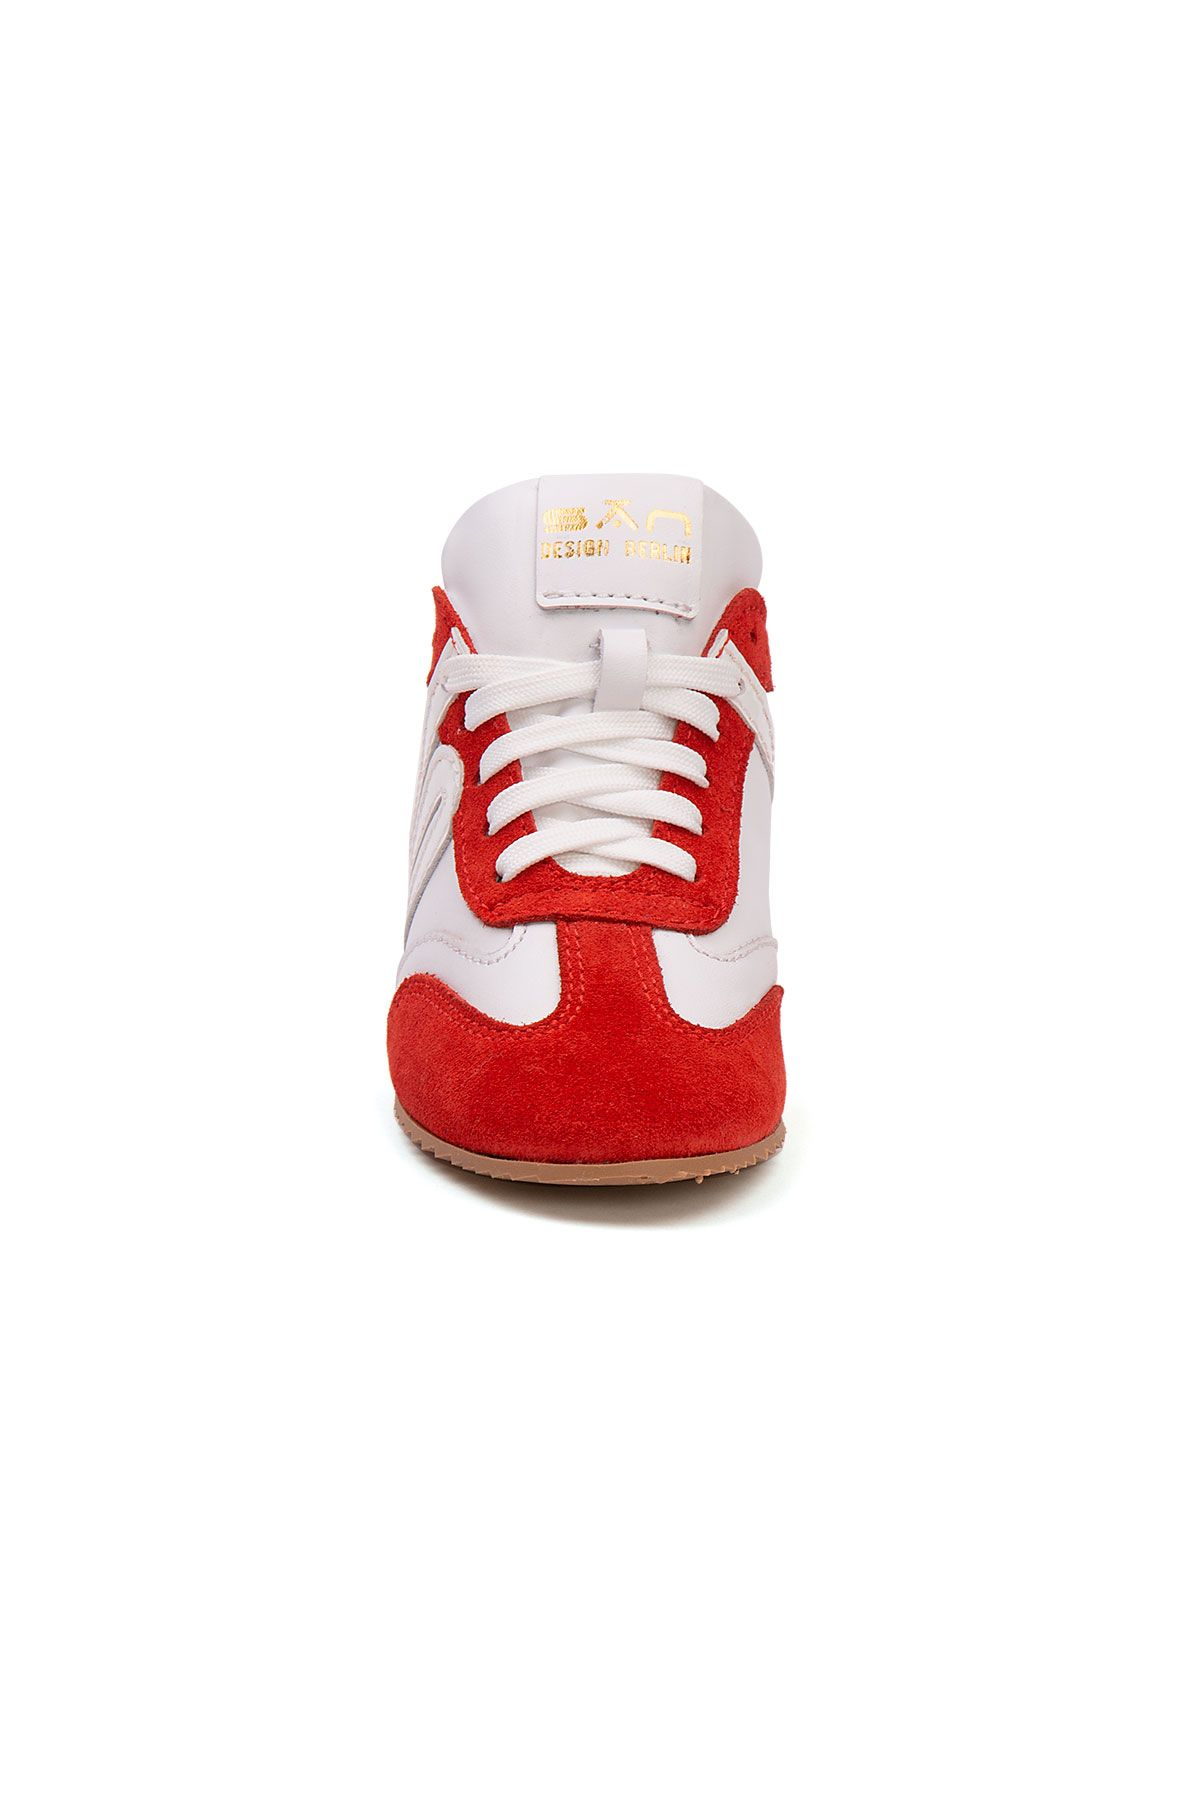 San Women's Leather Sneakers SAN05S Red